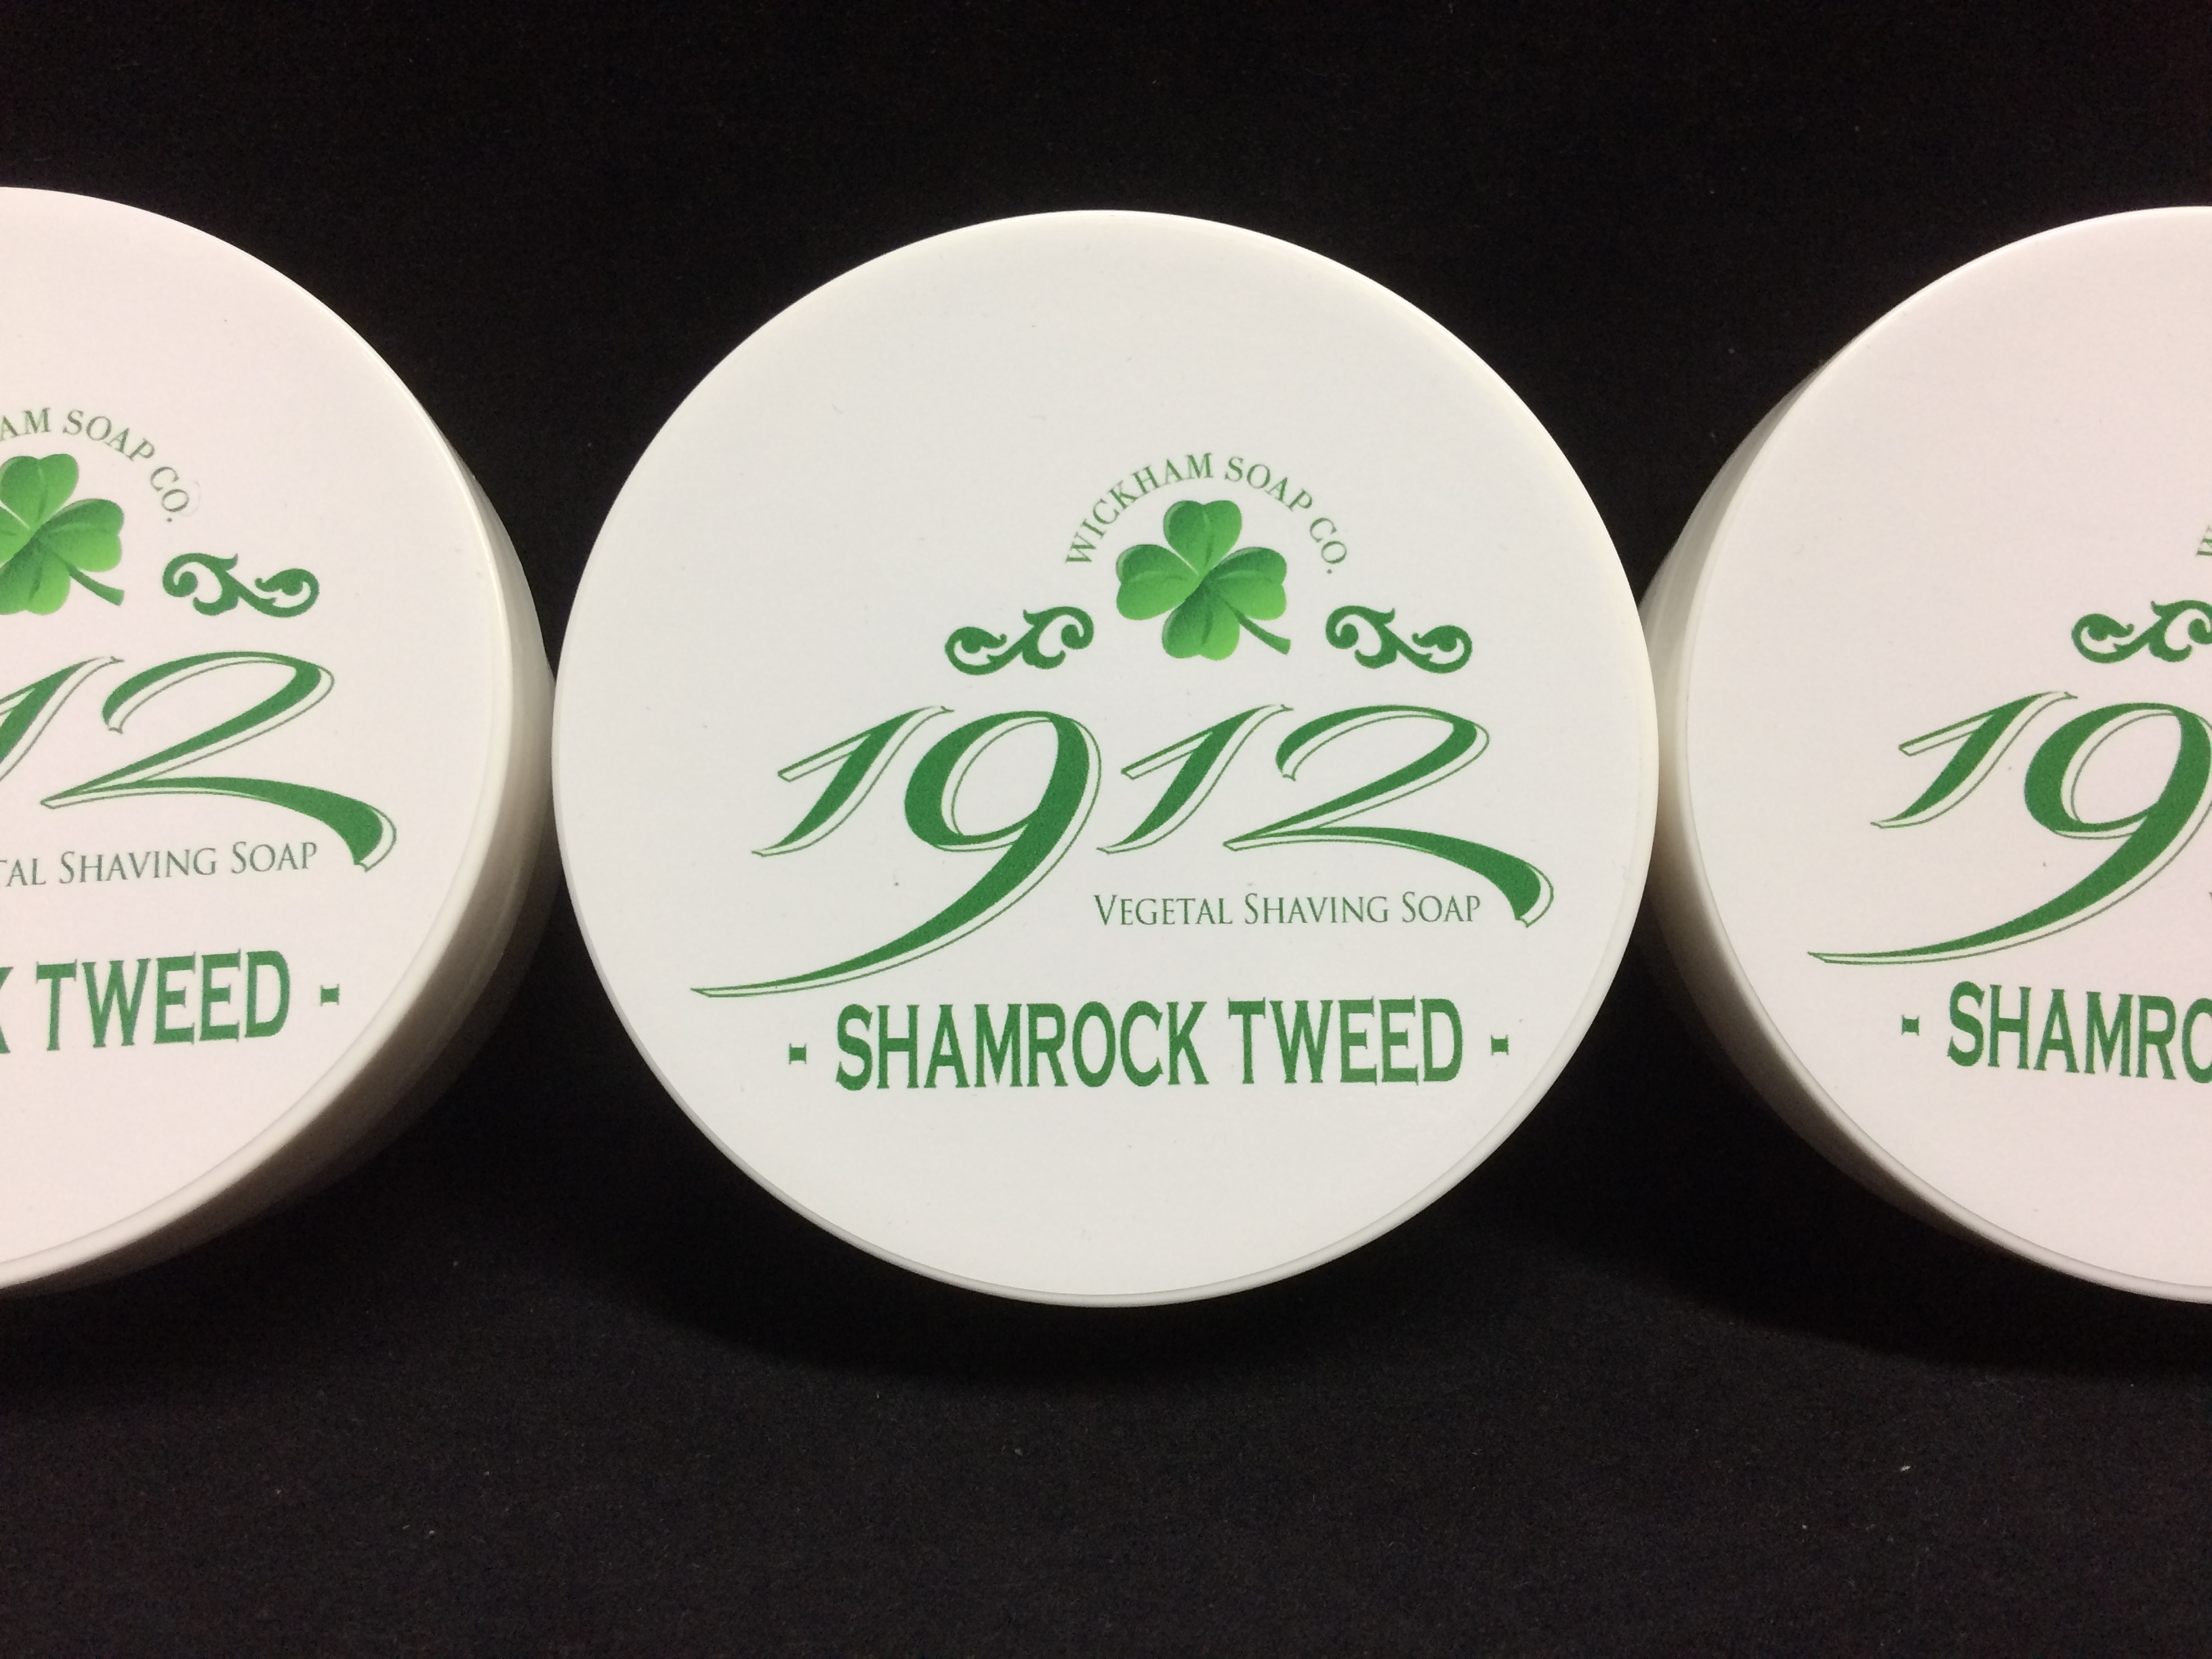 Wickham Soap Co 1912 Shaving Soap - Shamrock Tweed | Agent Shave